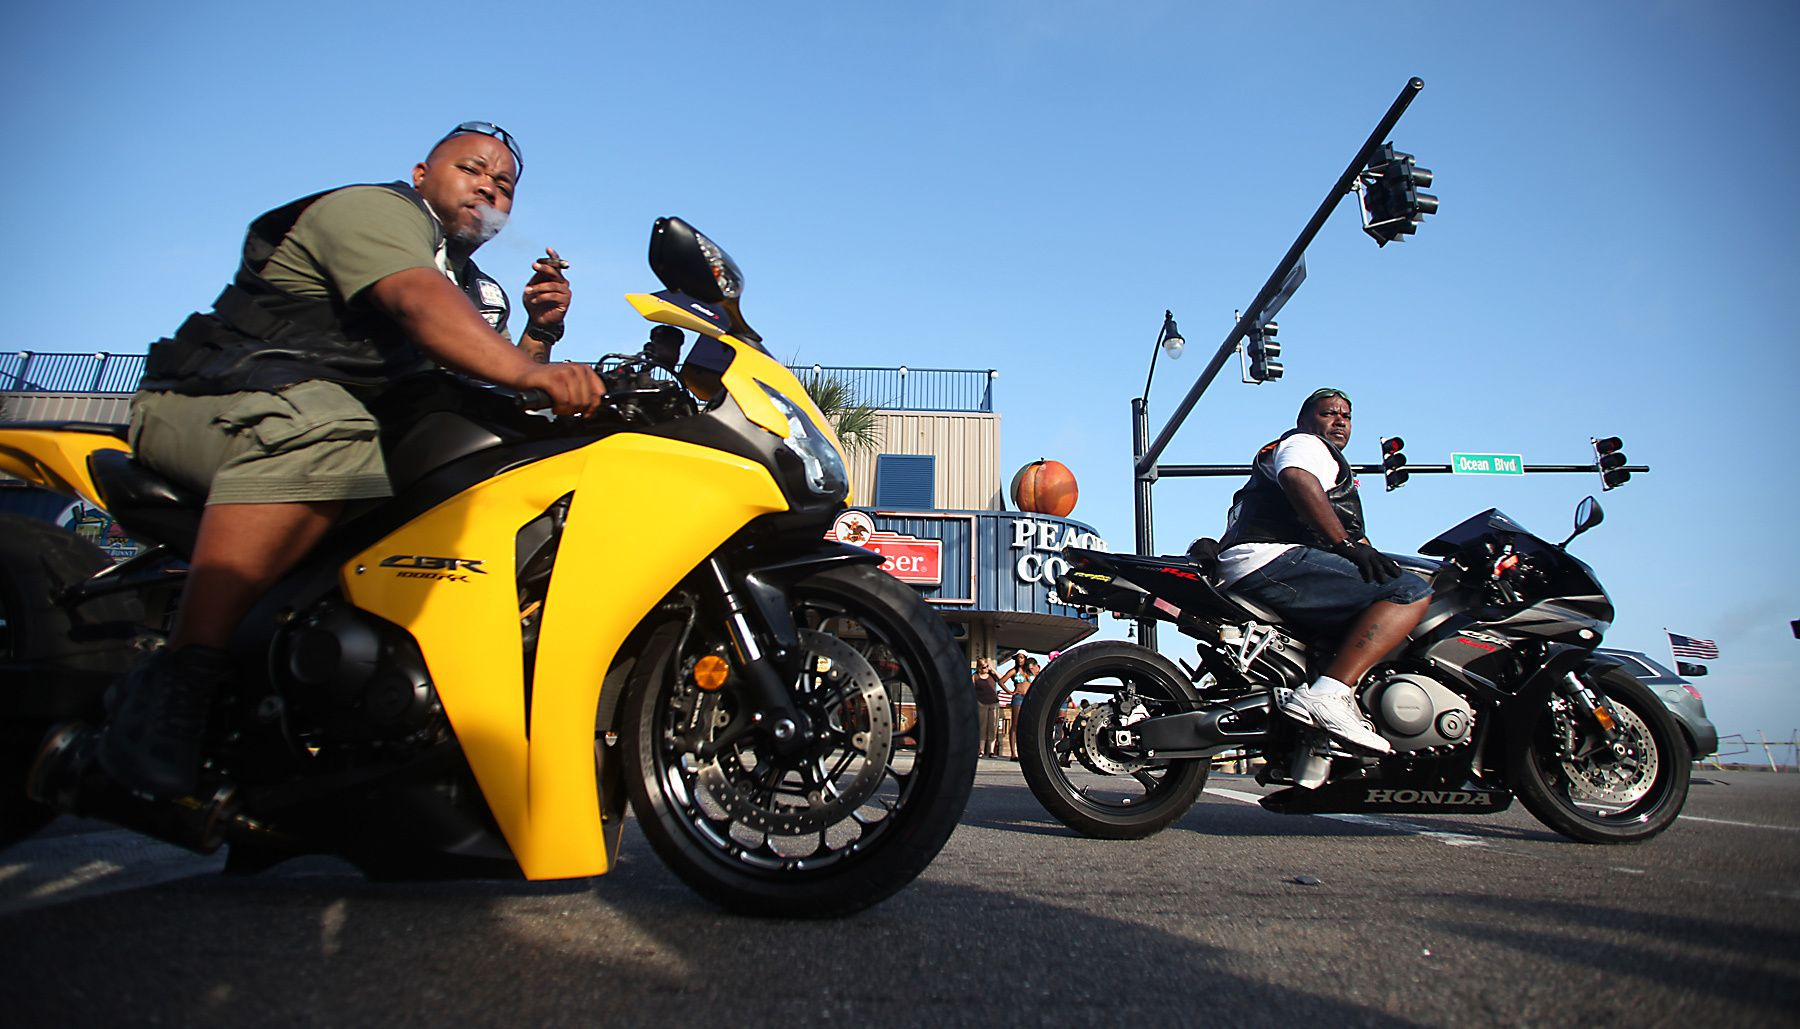 Bikers stop at a traffic light as they cruise down North Ocean Boulevard Thursday evening May 24, 2012, in Myrtle Beach during the Atlantic Beach Memorial Day Bikefest. Although centered in nearby Atlantic Beach, the Bikefest has spread to neighboring beaches in the Grand Strand region of South Carolina. (Photo By Randall Hill / For The Washington Post)